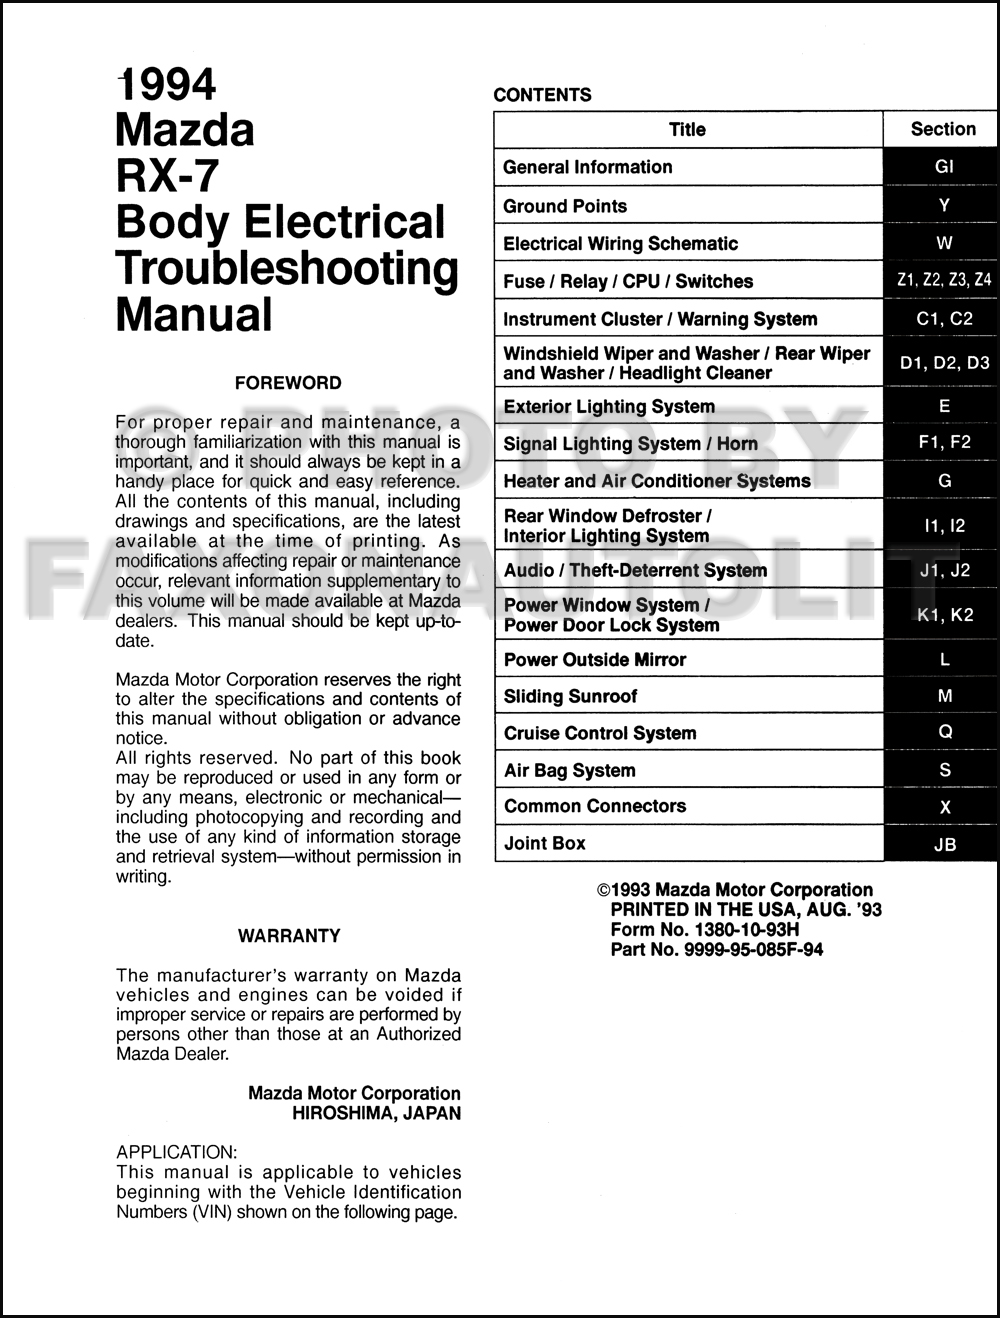 Horns Wiring Diagram Of 1994 Mazda Rx 7 Wire Center Audio System Type 1 Body Electrical Troubleshooting Manual Original Rh Faxonautoliterature Com 12 Lighter Plug Dc